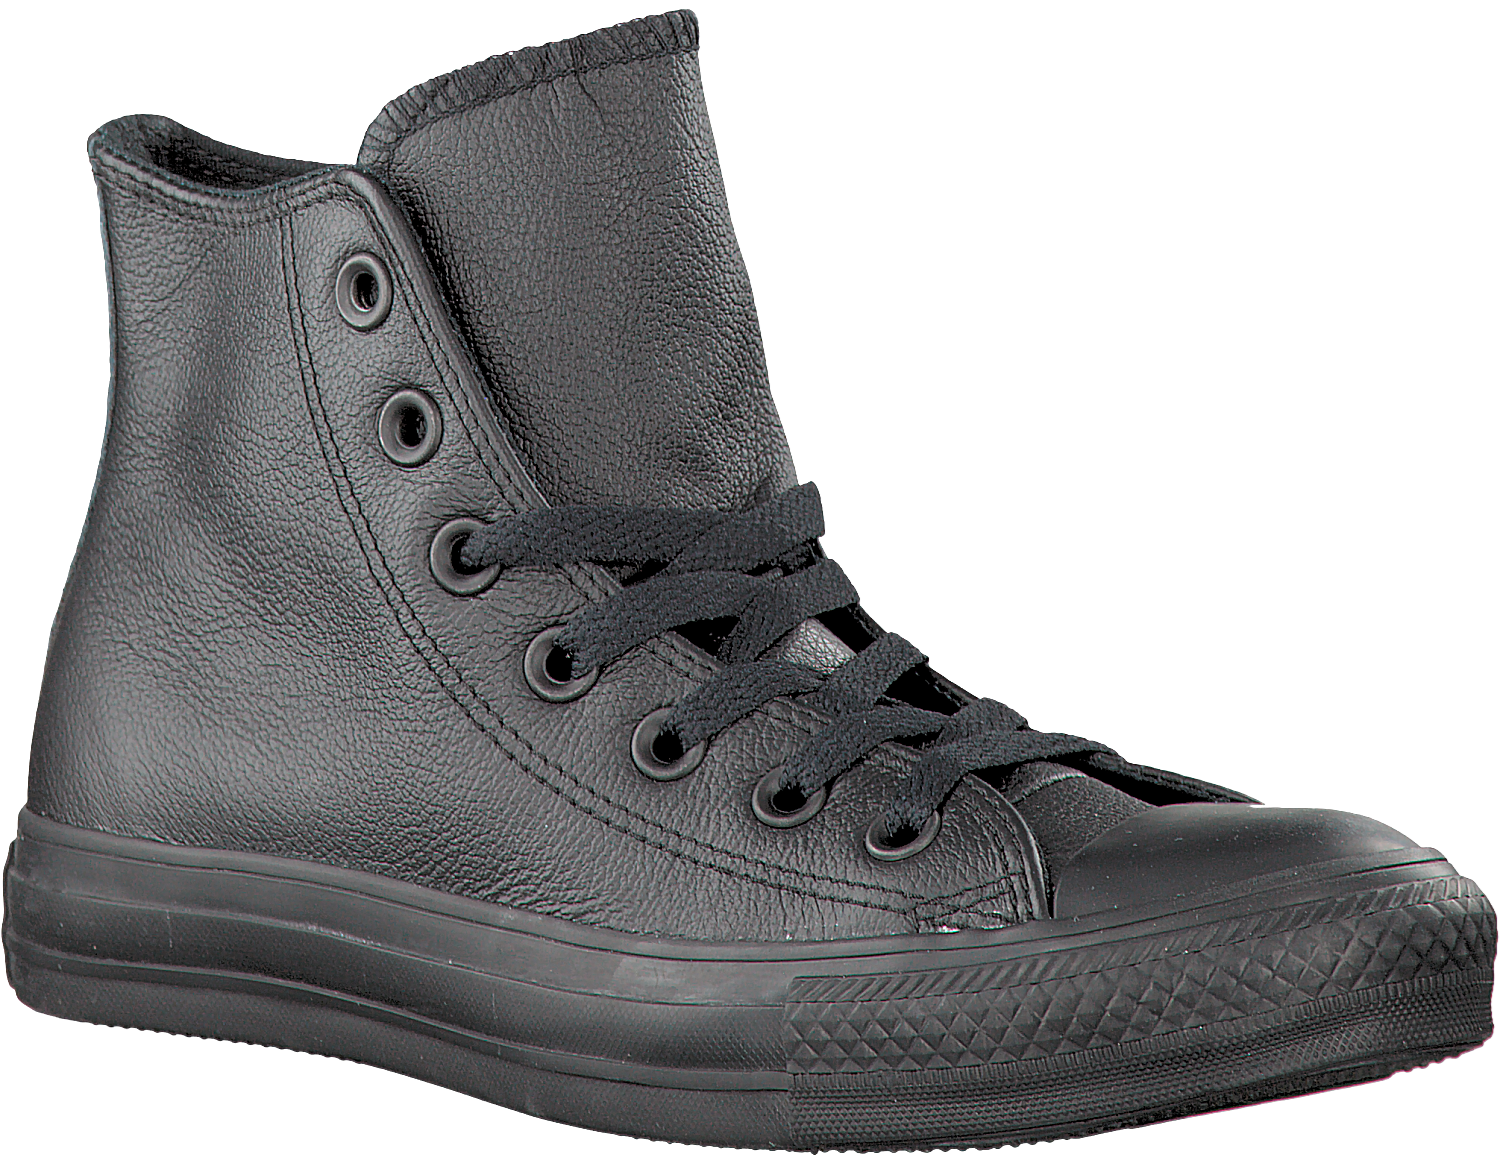 63f63e258a2 Zwarte CONVERSE Sneakers CHUCK TAYLOR ALL STAR. CONVERSE. -50%. Previous